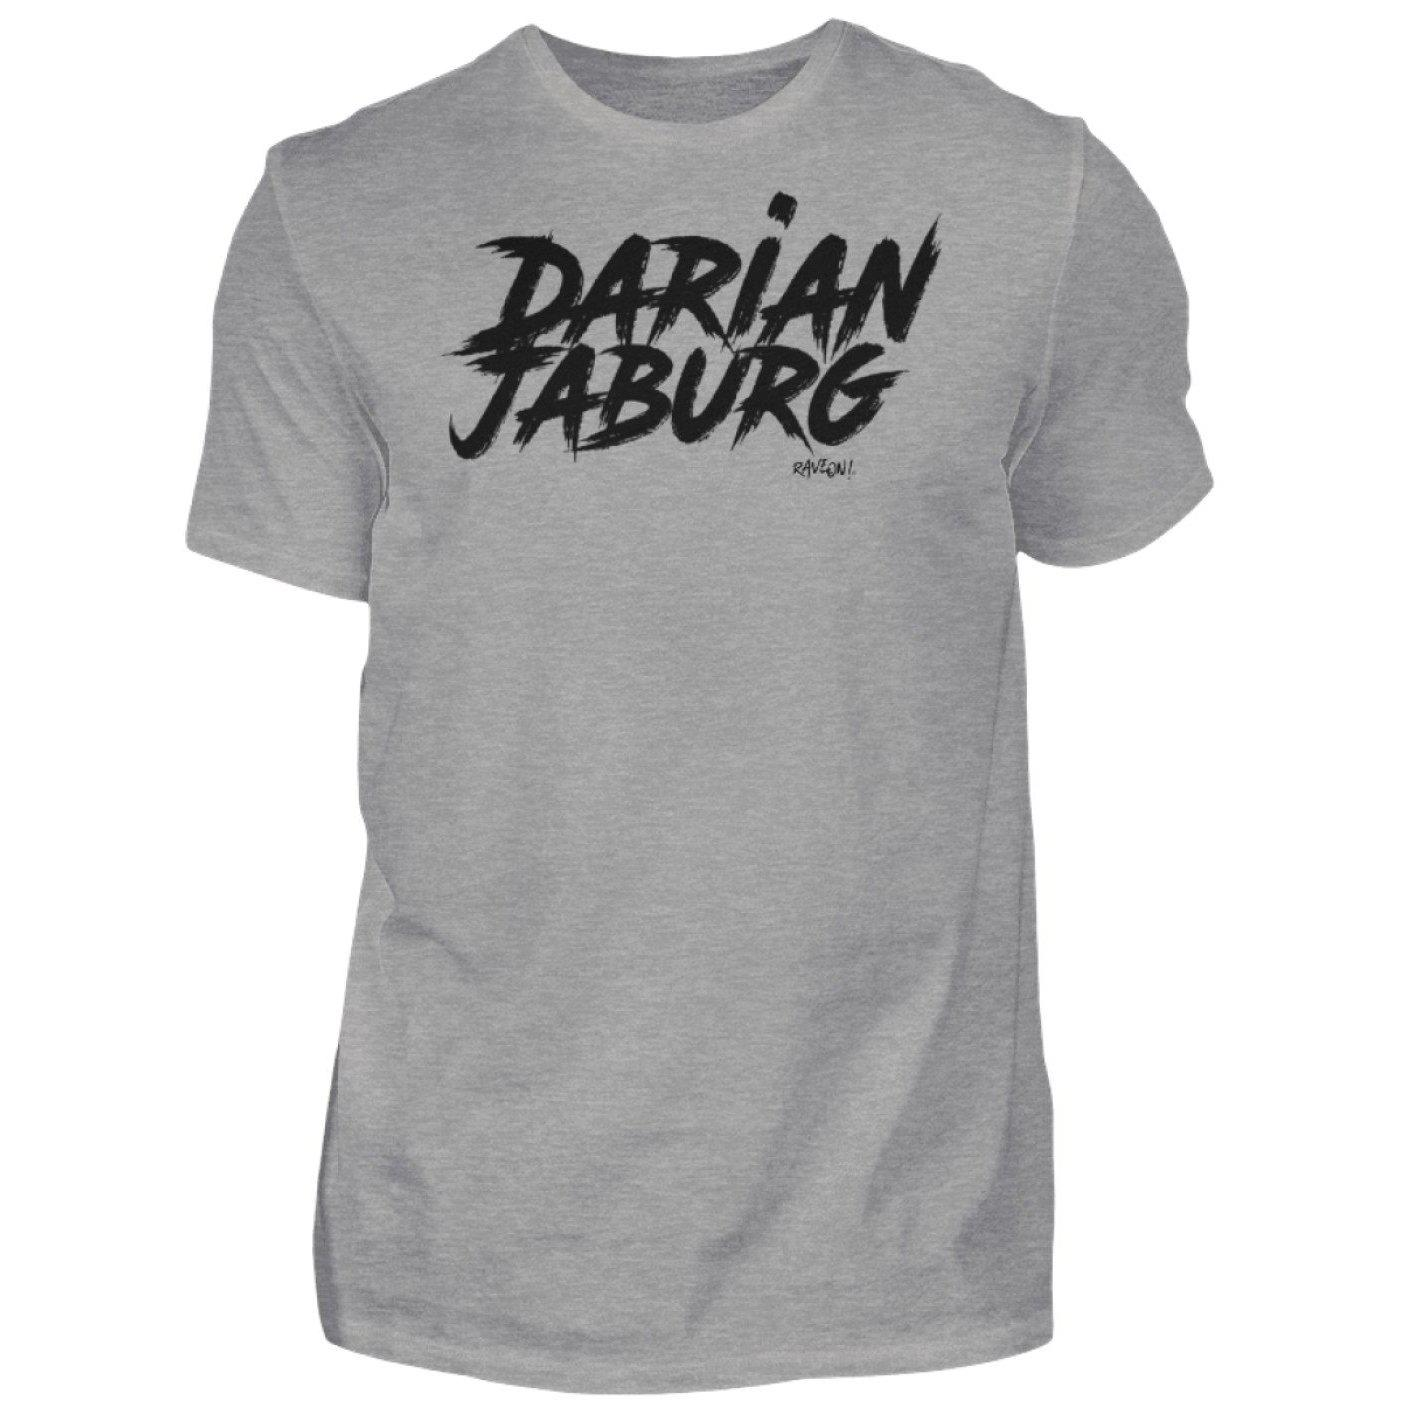 Darian Jaburg - BS Rec.White - Rave On!® - Herren Premiumshirt Herren Premium Shirt Grey Heather / S - Rave On!® der Club & Techno Szene Shop für Coole Junge Mode Streetwear Style & Fashion Outfits + Sexy Festival 420 Stuff